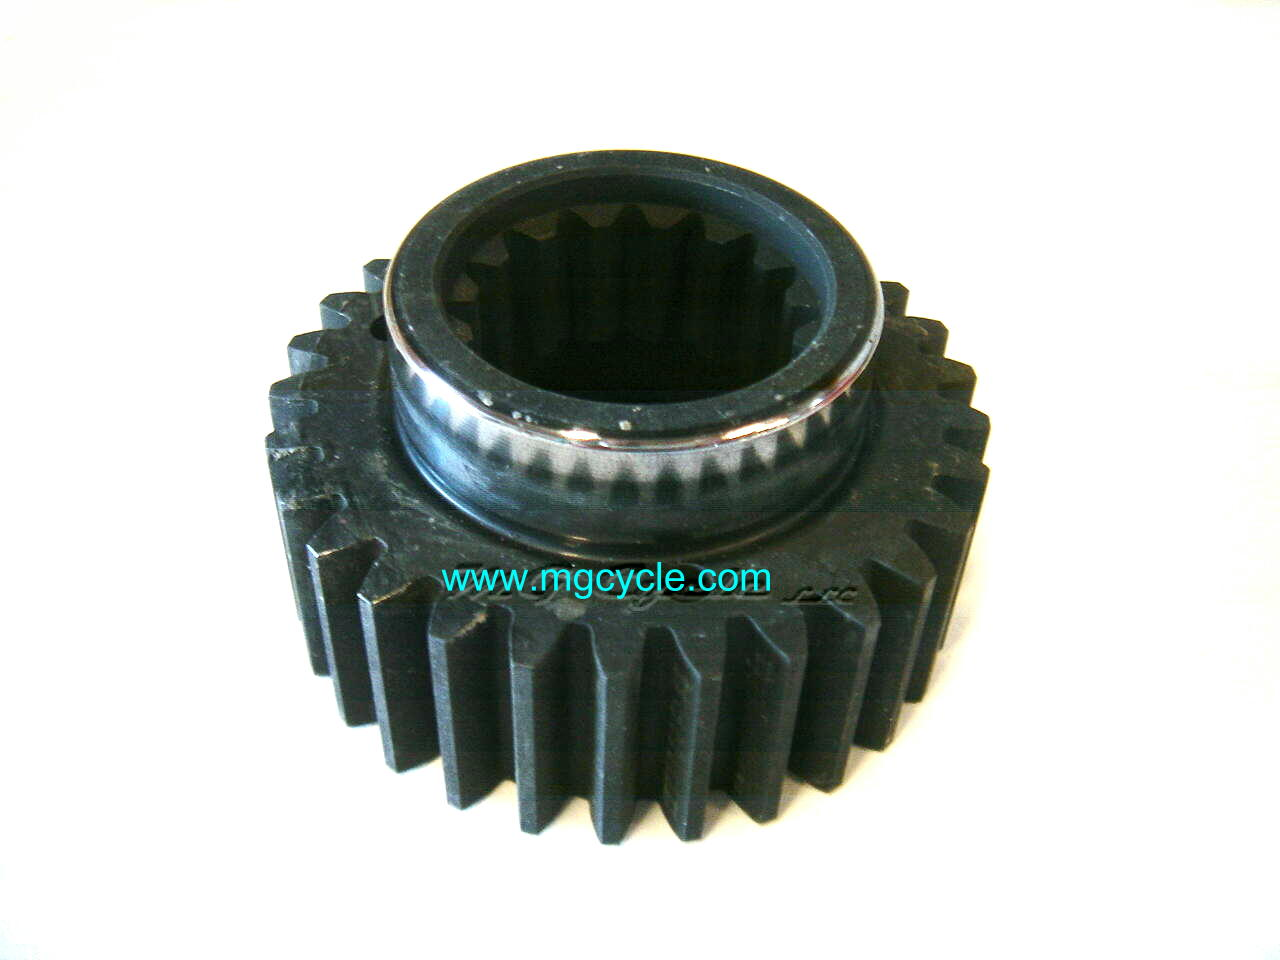 Clutch hub for 6 speed spine frames 1999-2005 GU04211600